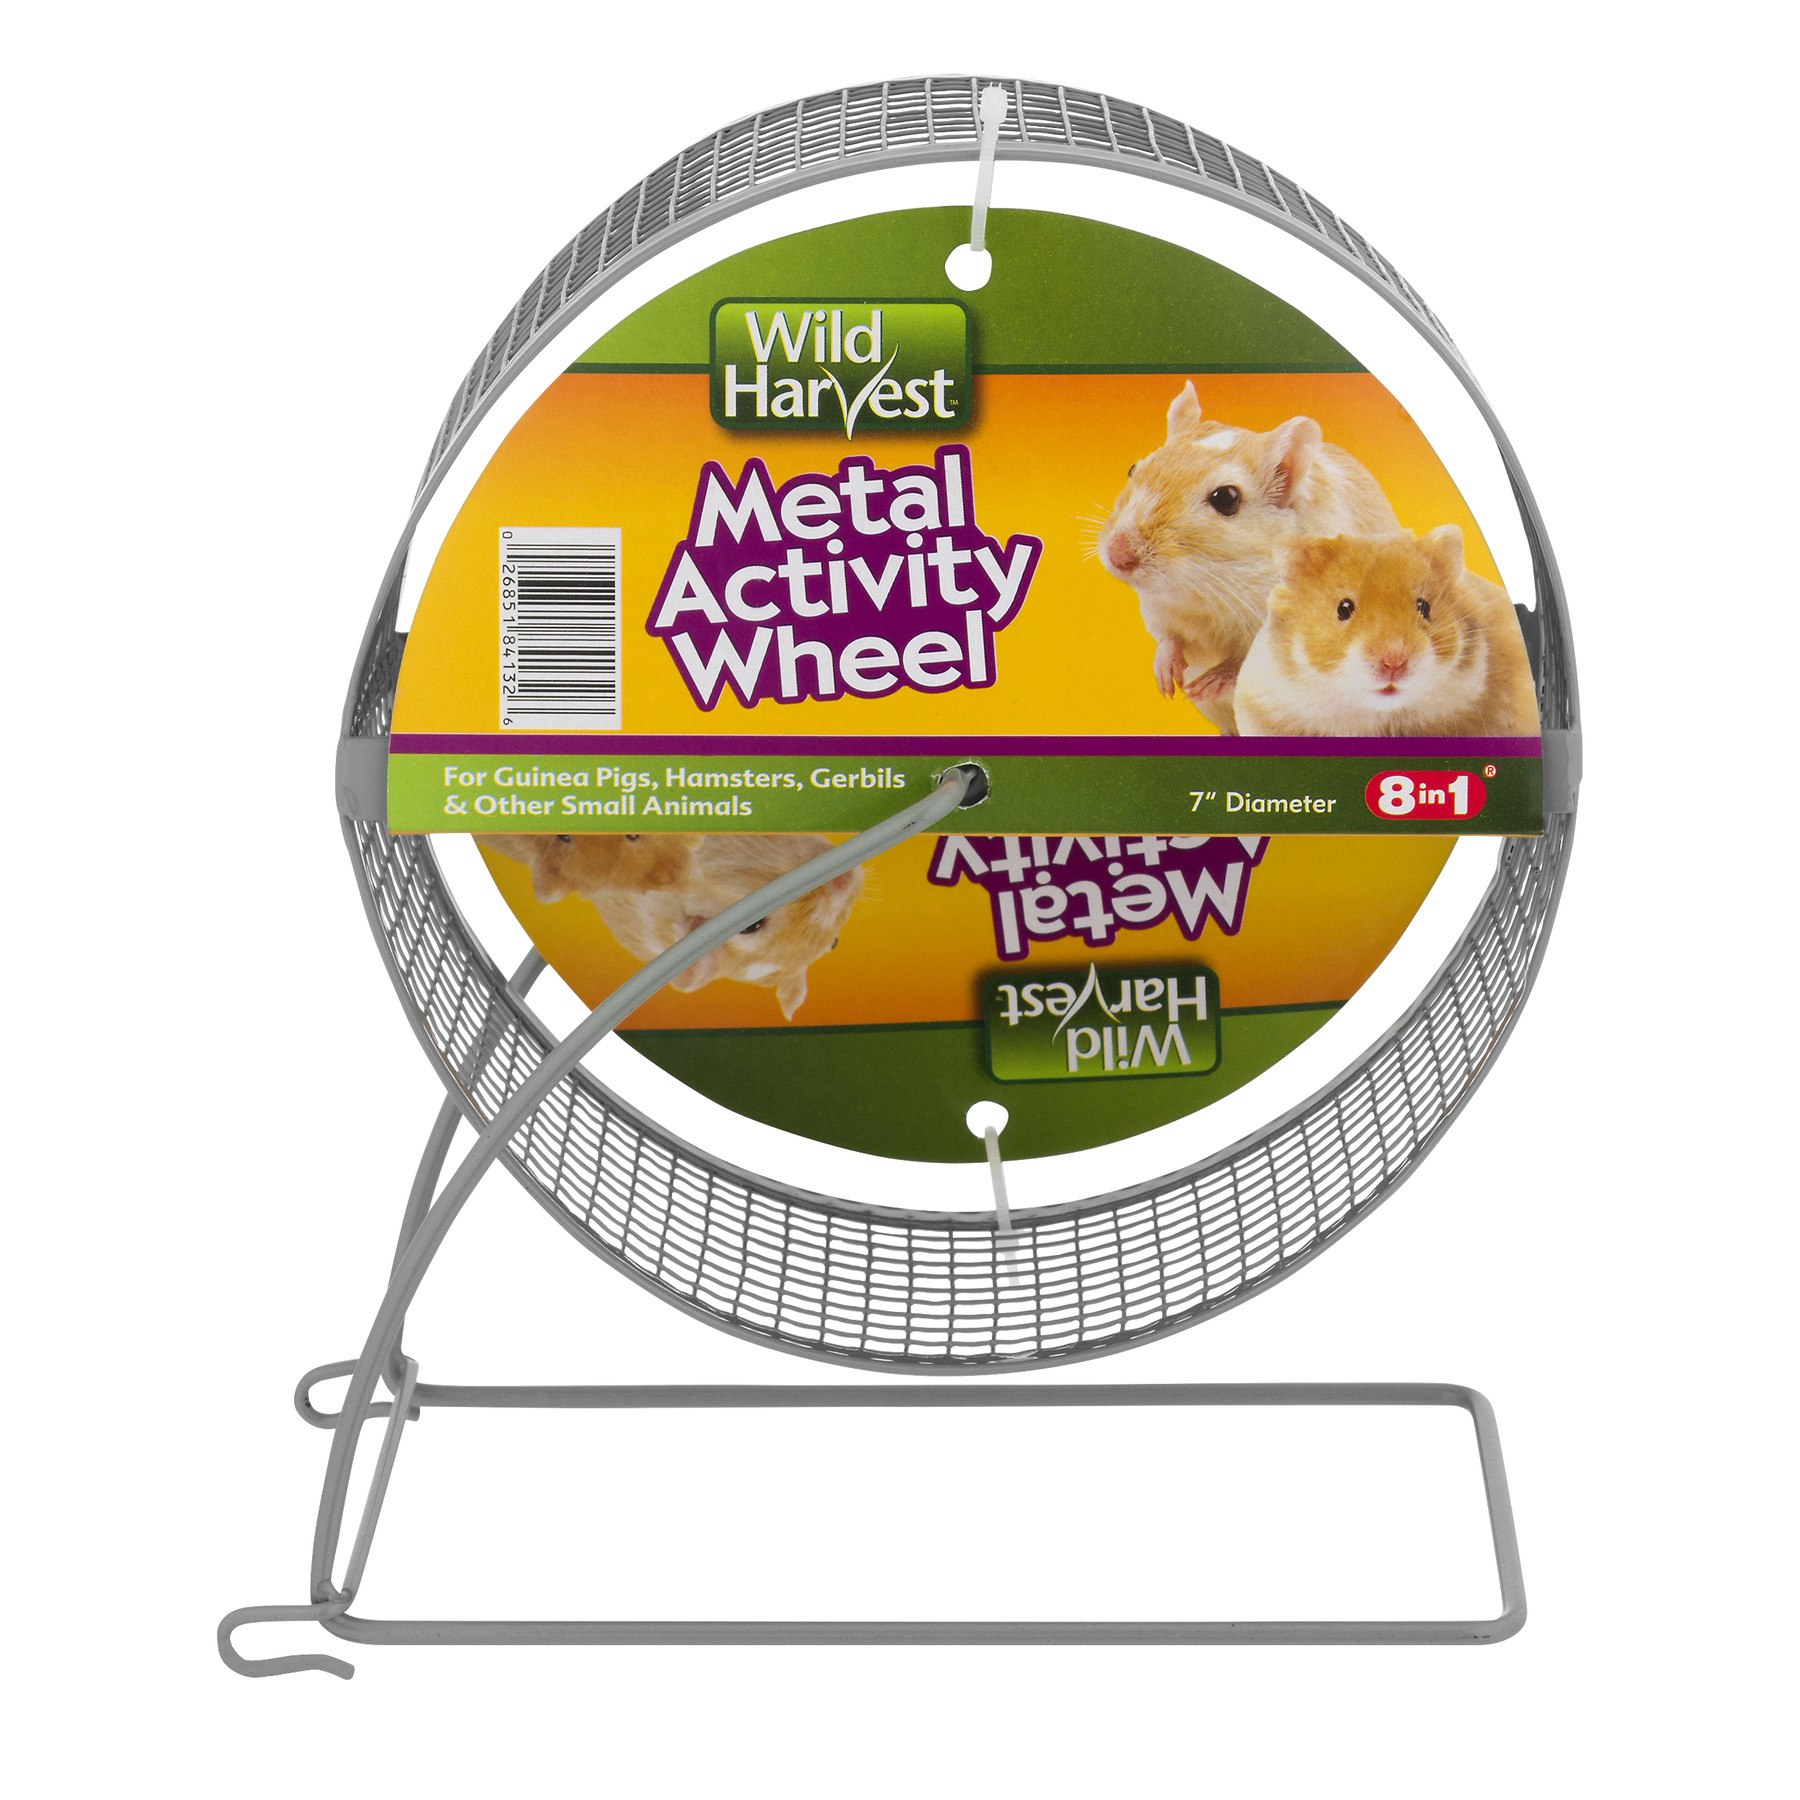 "Wild Harvest 7"" Metal Activity Wheel for Small Animals, 1 ct"